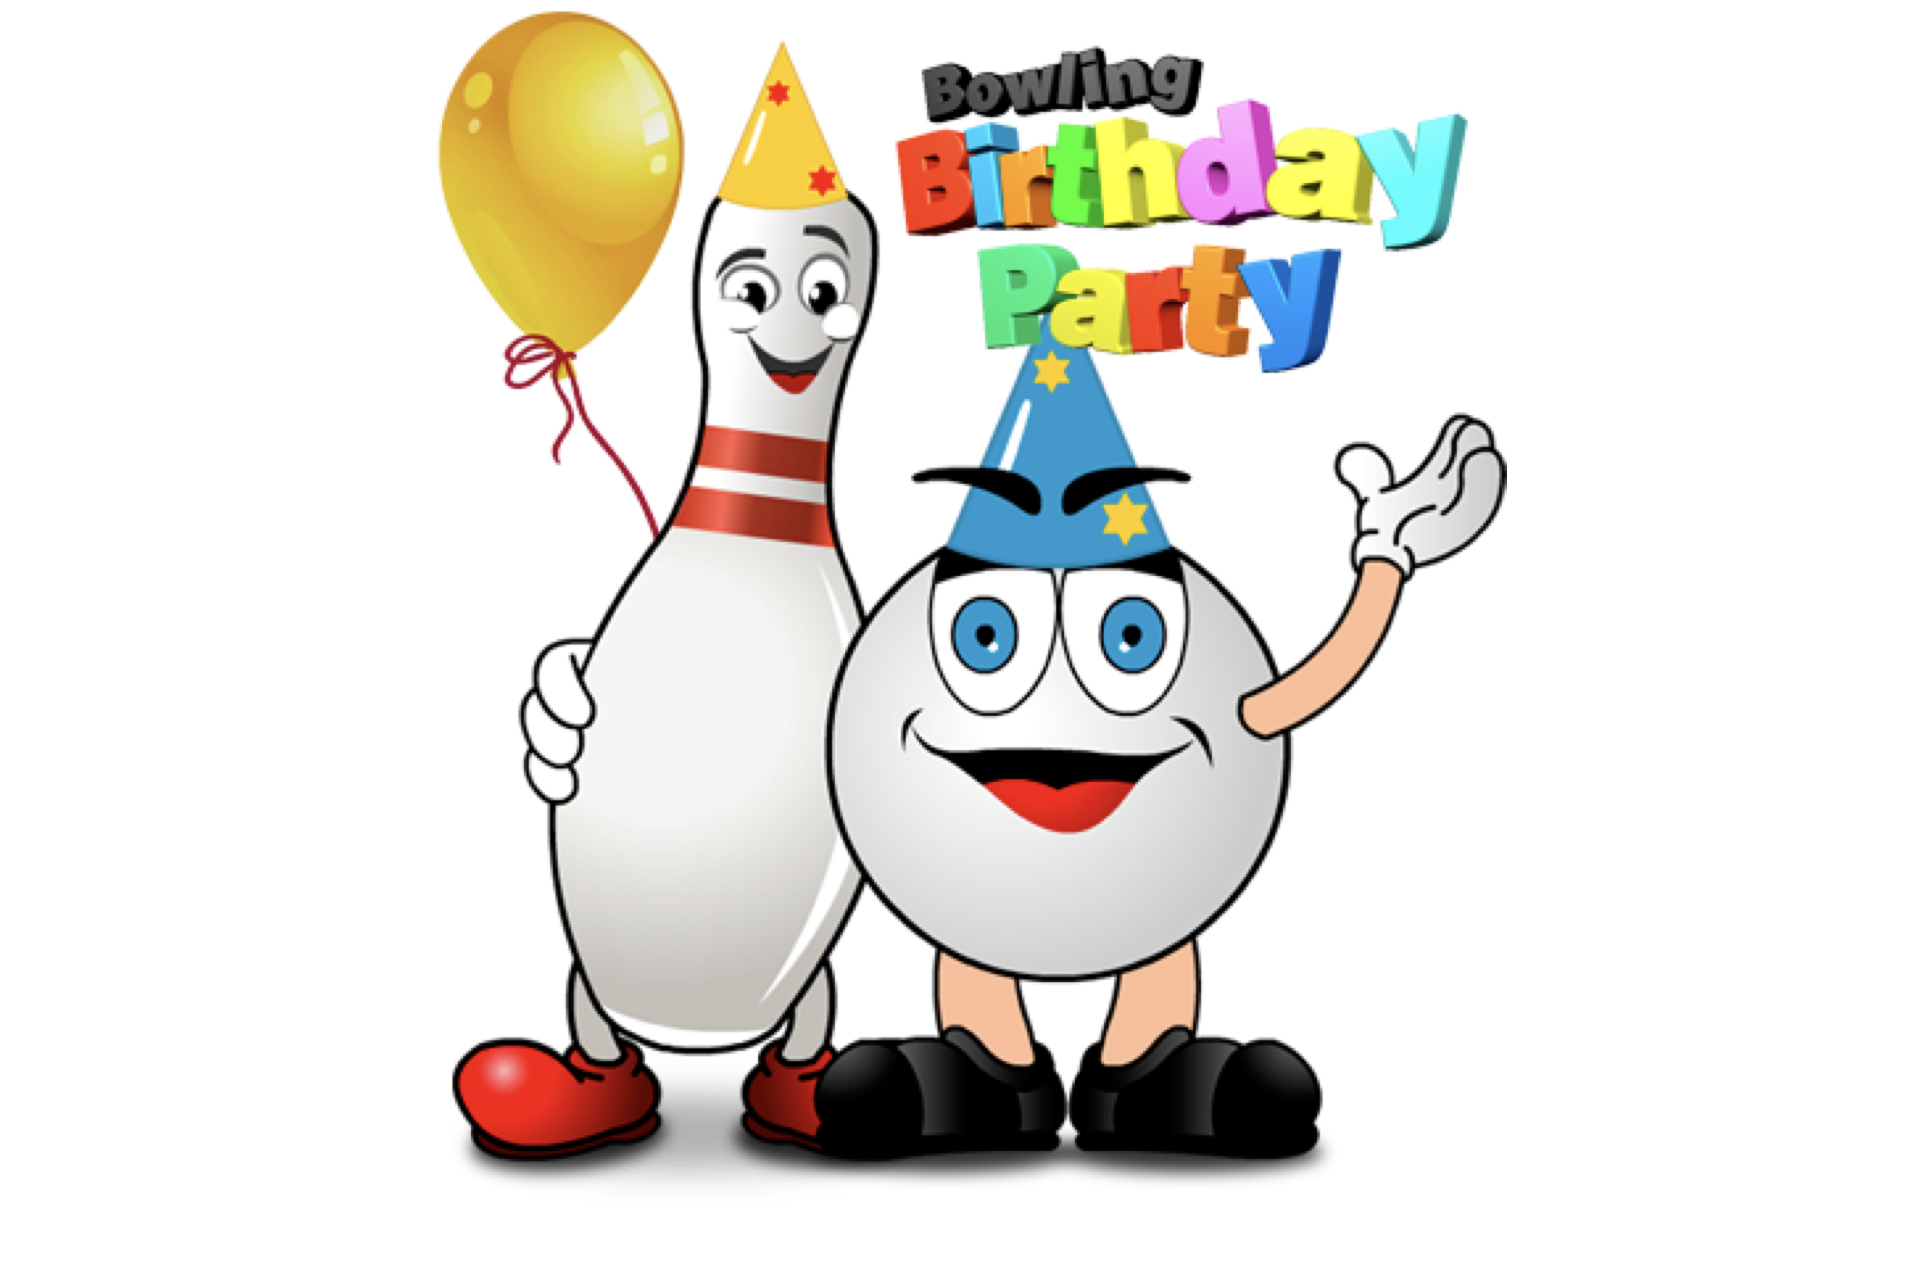 bowling birthday clipart ; birthday_party2